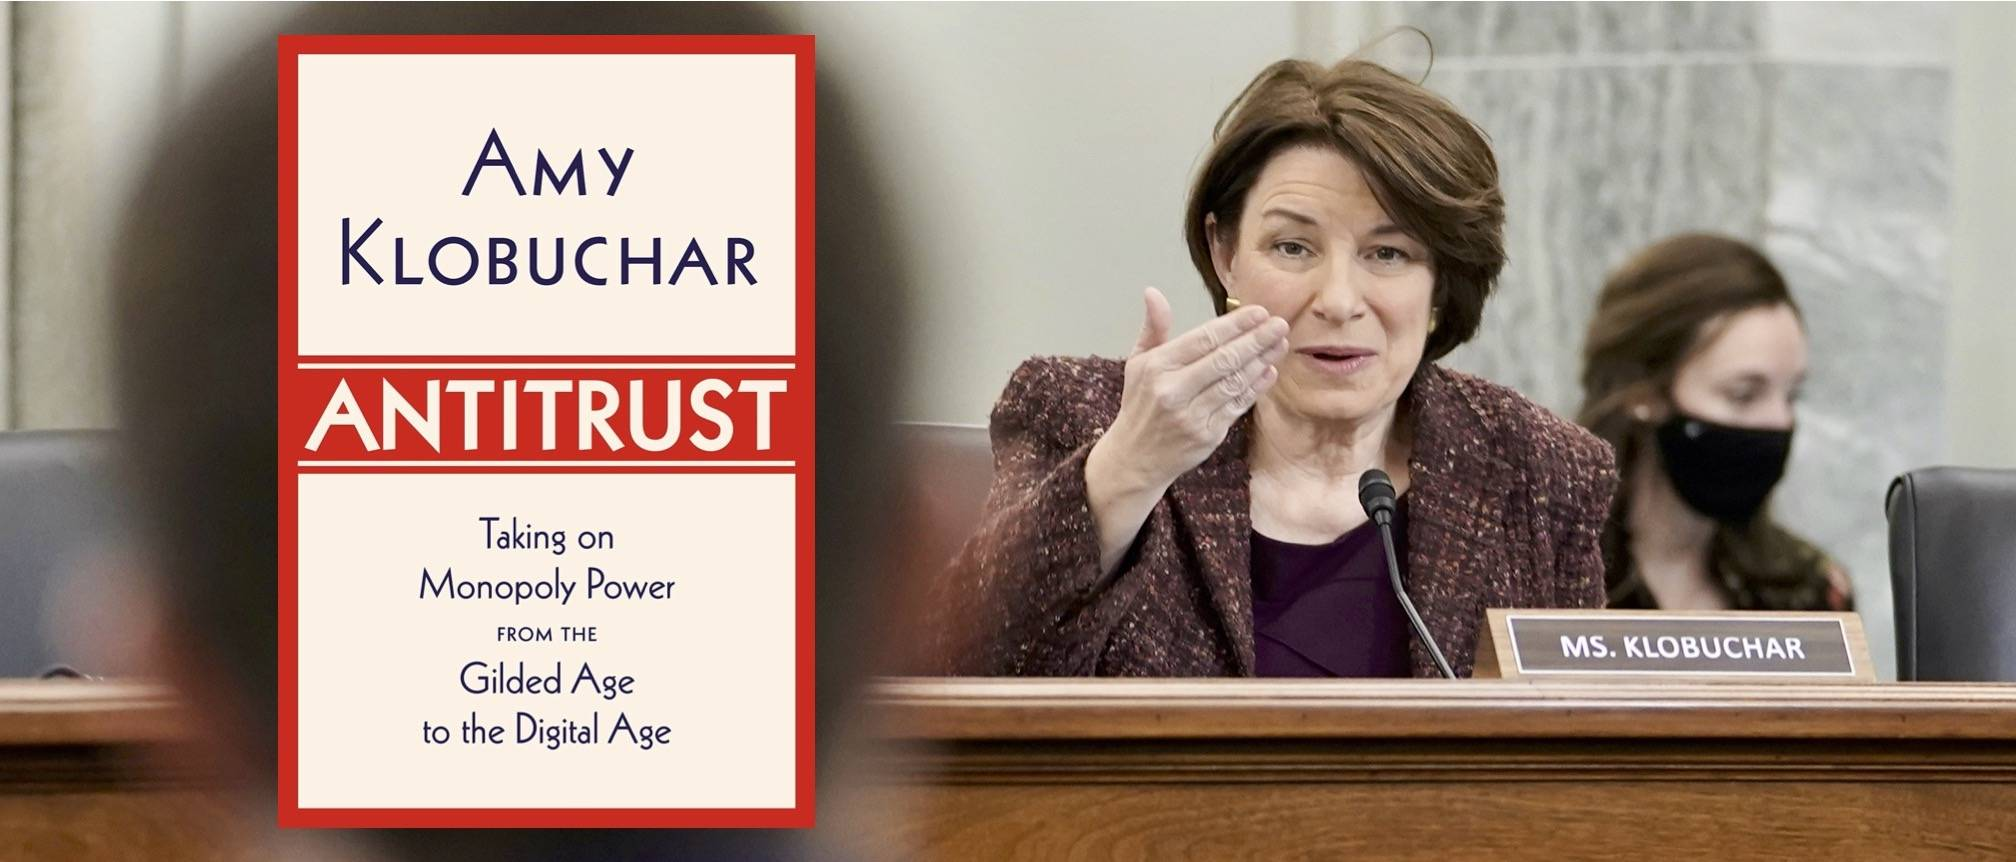 In proposed legislation and her upcoming book, Sen. Amy Klobuchar has announced her intentions to help strengthen antitrust regulation in the United States. (Photo by Ken Cedeno/EPA-EFE/Shutterstock; Knopf)